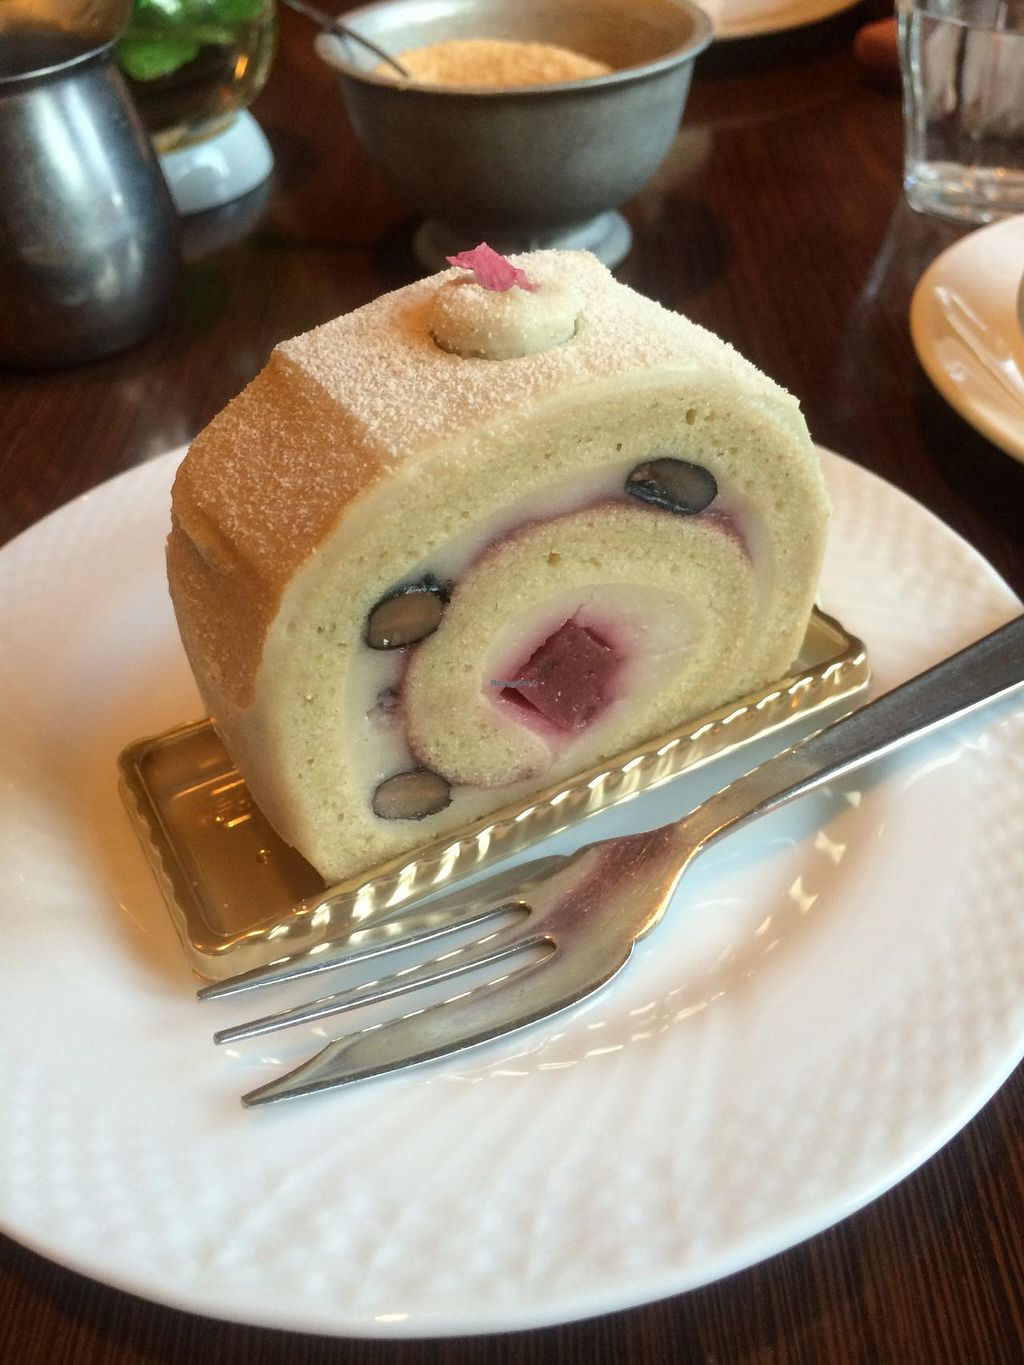 """Photo of Chaya Macrobiotics - Isetan Shinjuku  by <a href=""""/members/profile/Meggie%20and%20Ben"""">Meggie and Ben</a> <br/>Sakura roll cake <br/> December 31, 2014  - <a href='/contact/abuse/image/20523/89108'>Report</a>"""